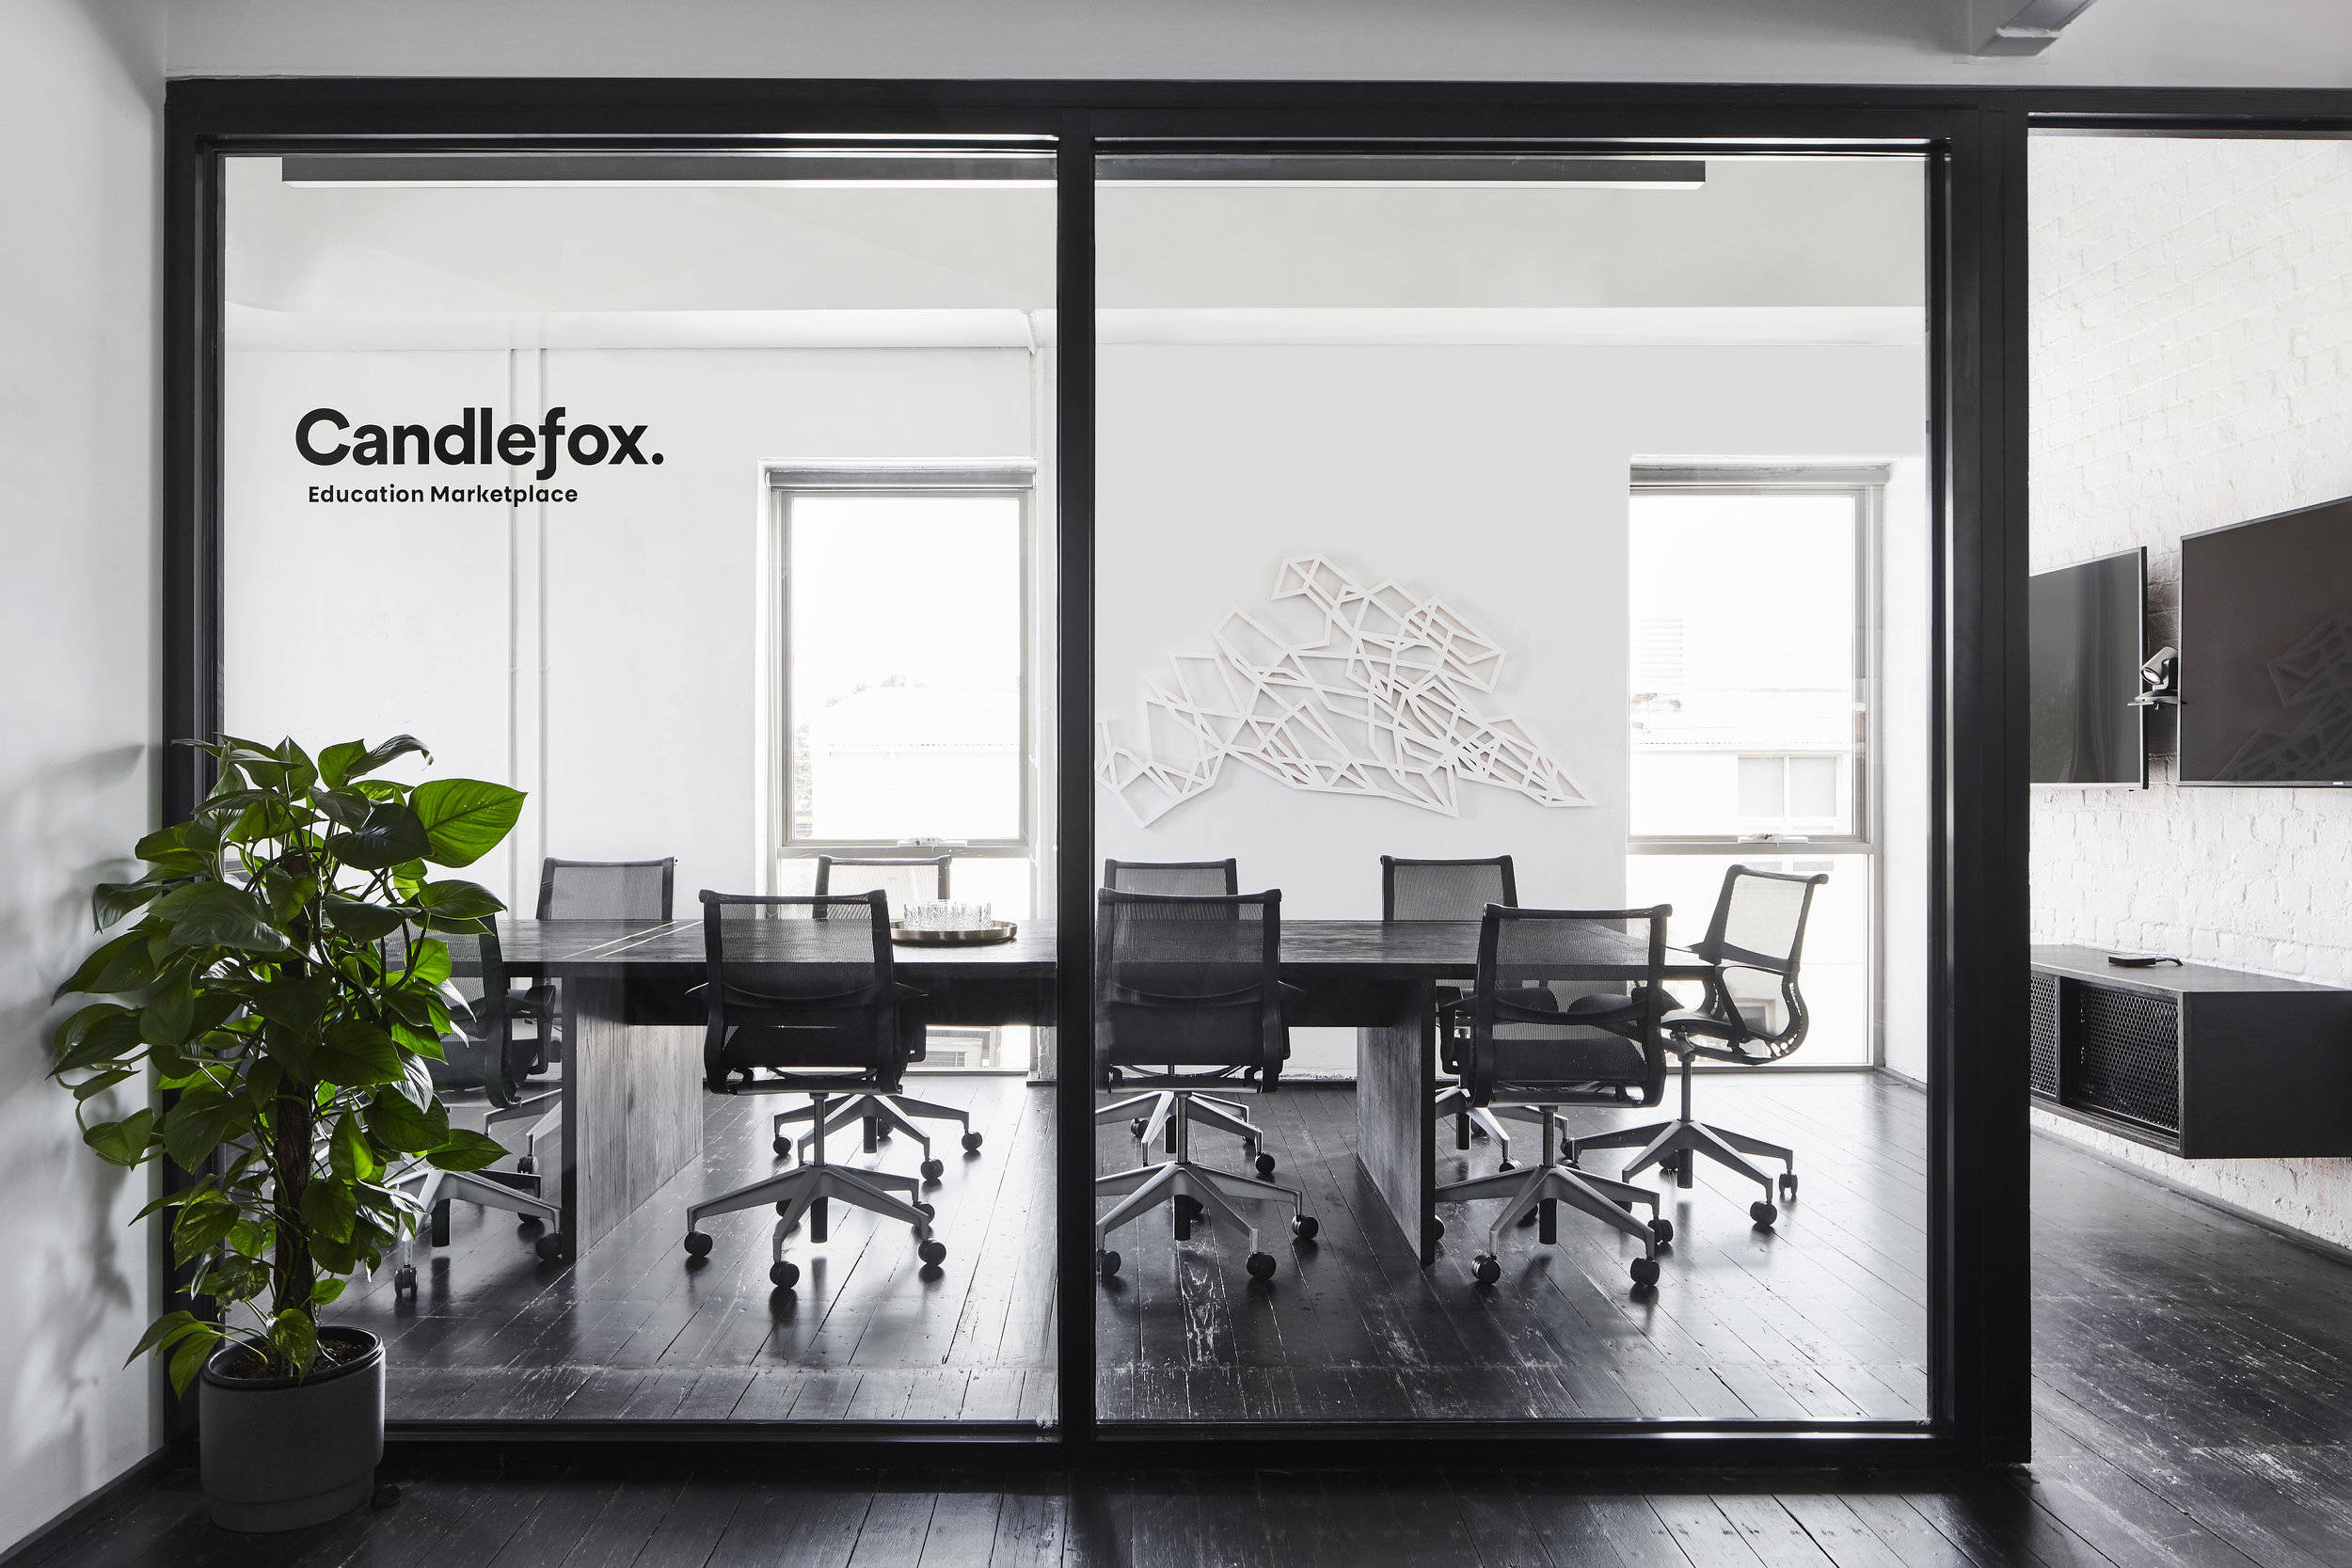 Candlefox Head Office Project  - the right palette, artwork and technology placement make for a seamlessly productive workplace.